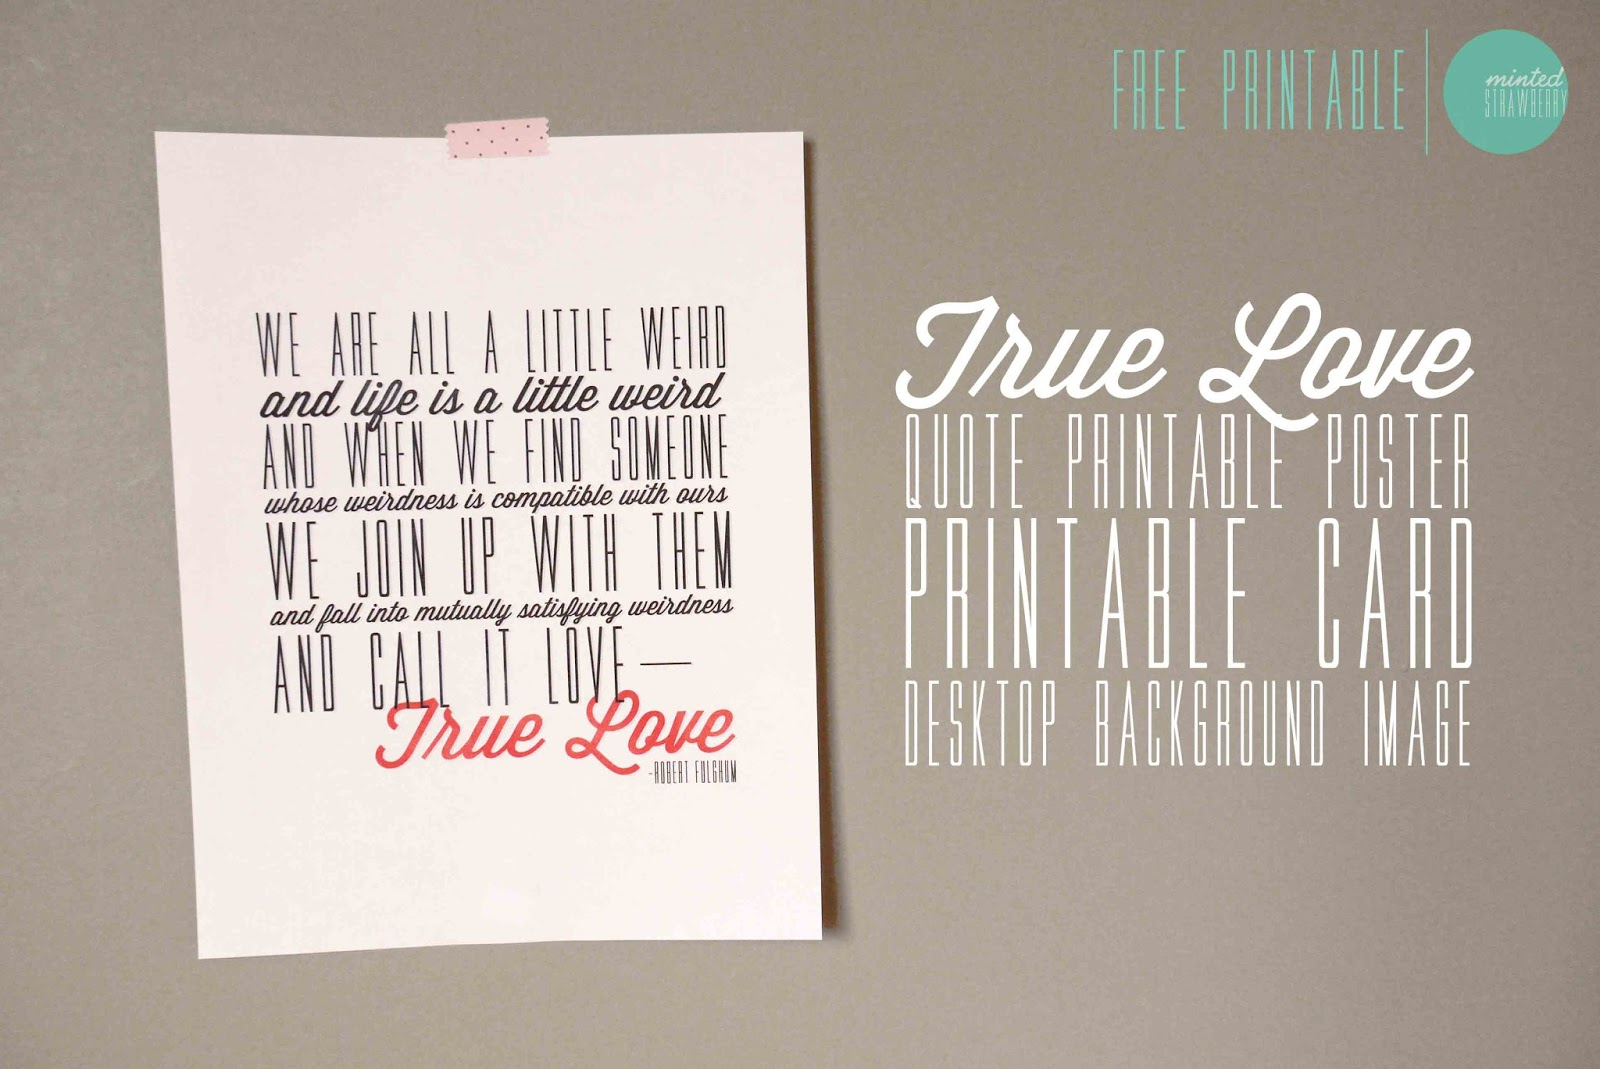 Printable Love Quotes Free Printable Robert Fulghum's 'true Love' Quote Poster  Minted